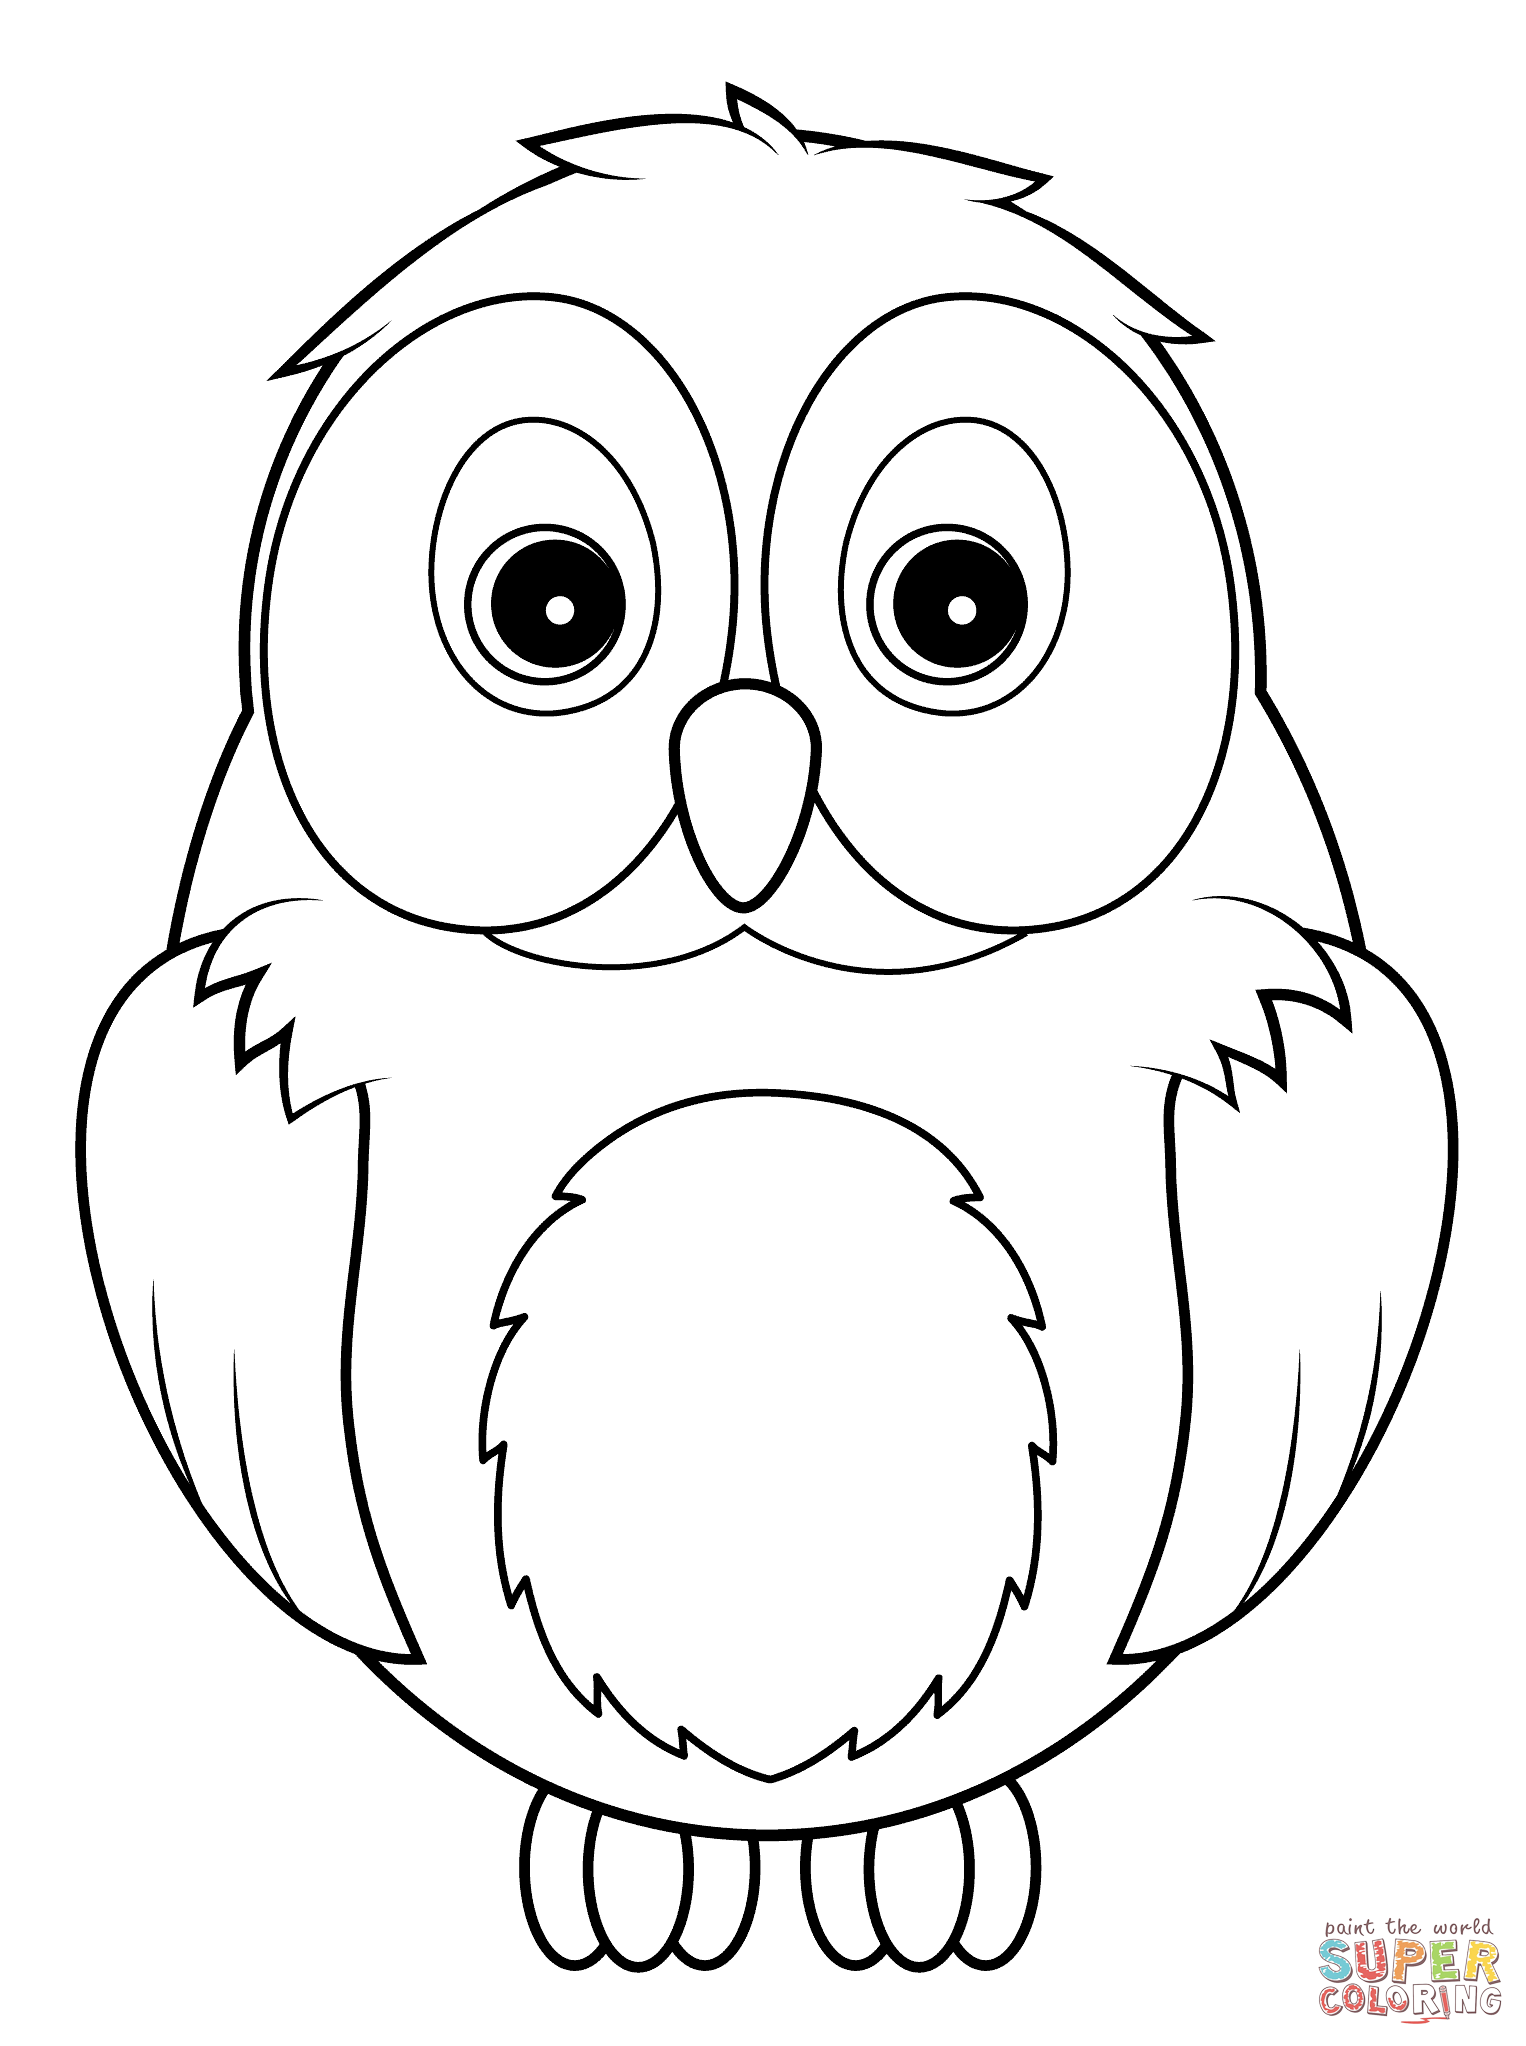 owl coloring images cartoon owl coloring page free printable coloring pages images coloring owl